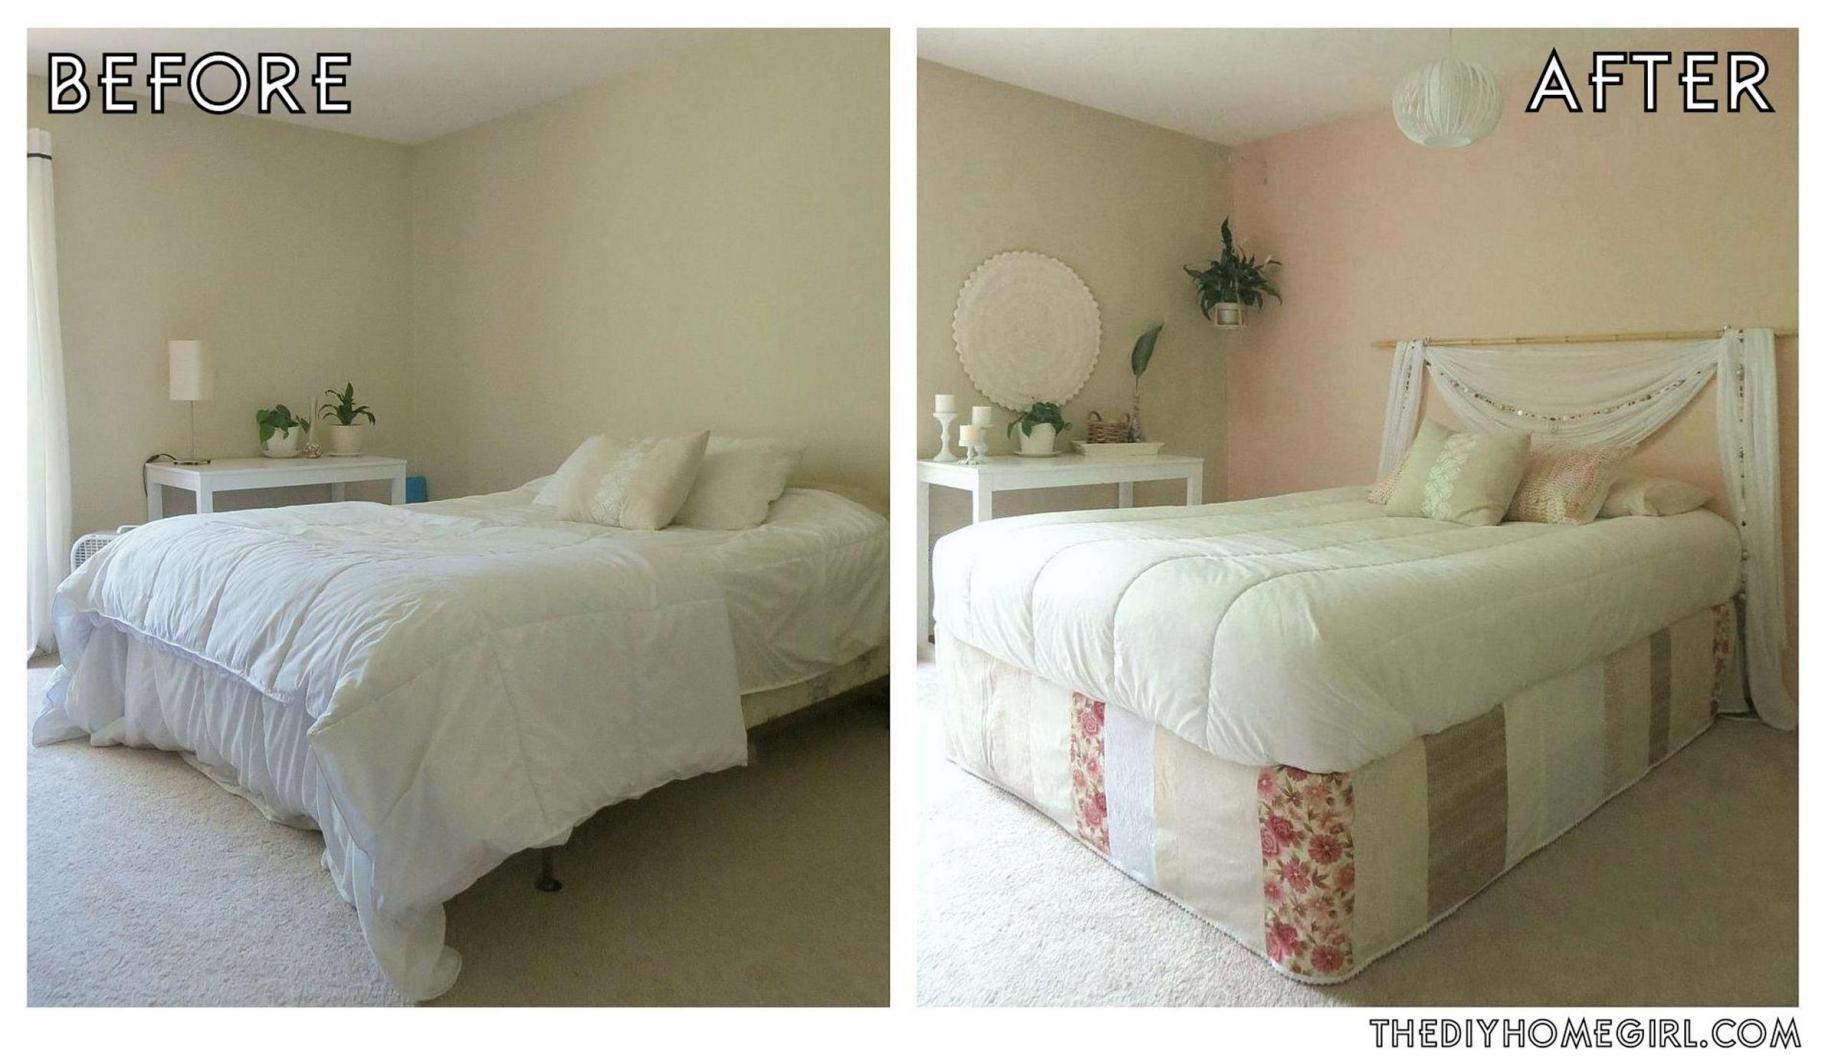 DIY Small Bedroom Makeover On a Budget 7